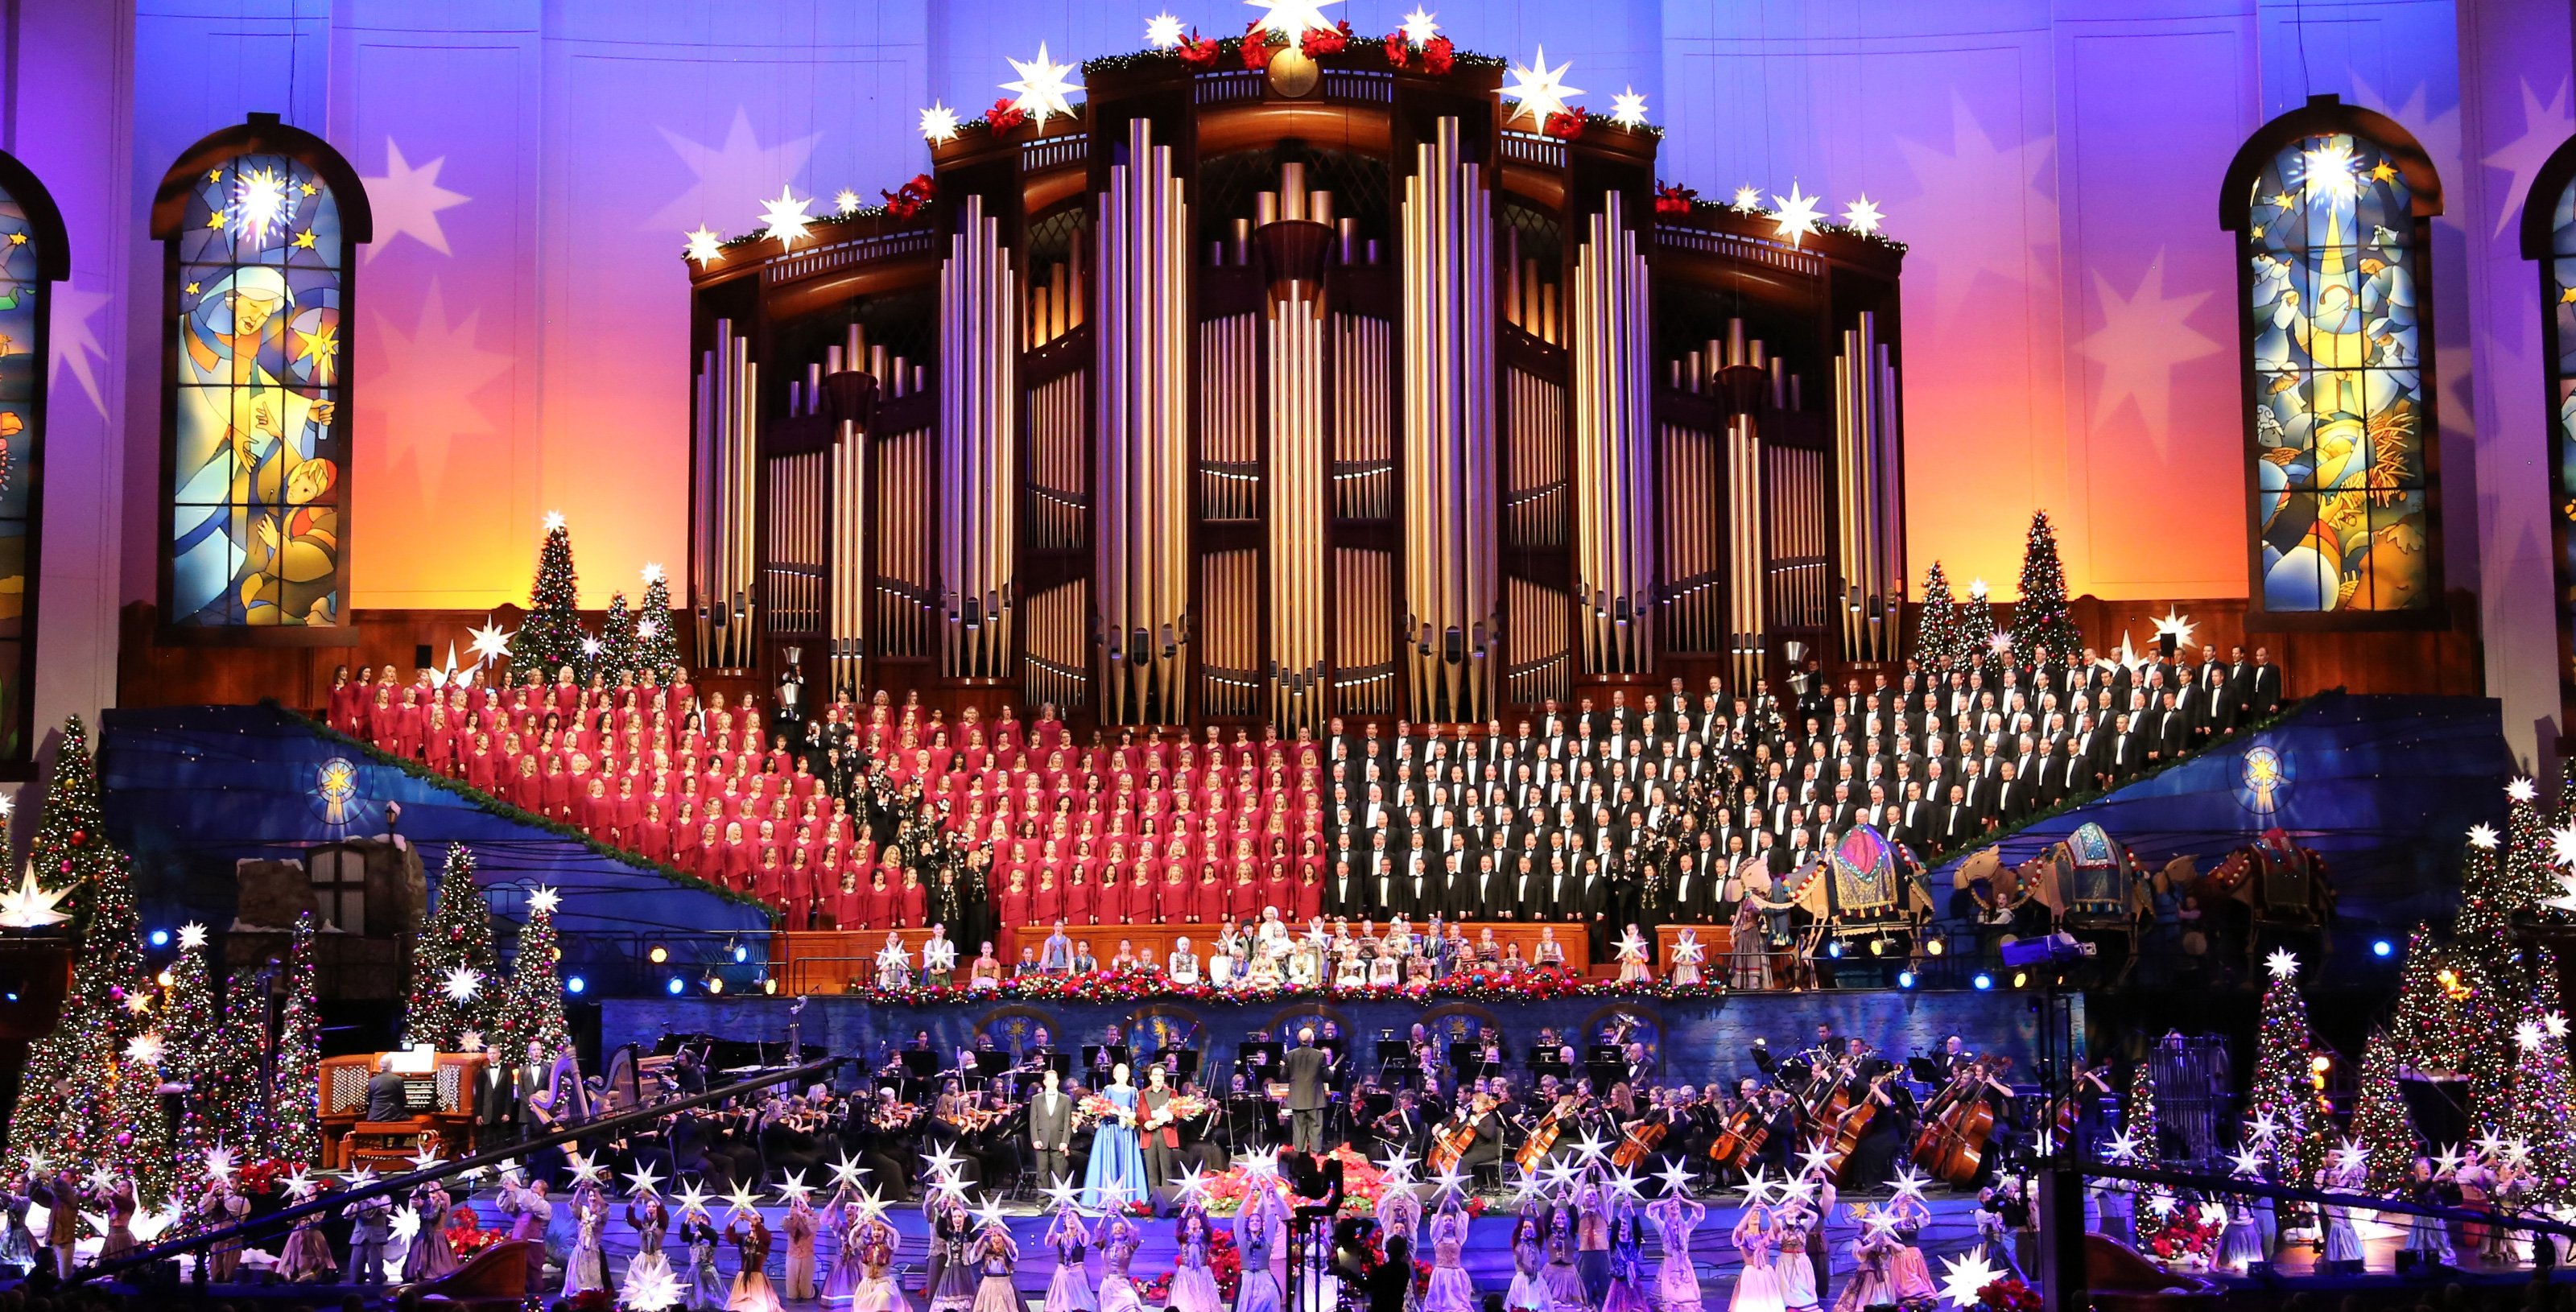 Christmas Concerts.Past Concerts Christmas With The Mormon Tabernacle Choir Pbs